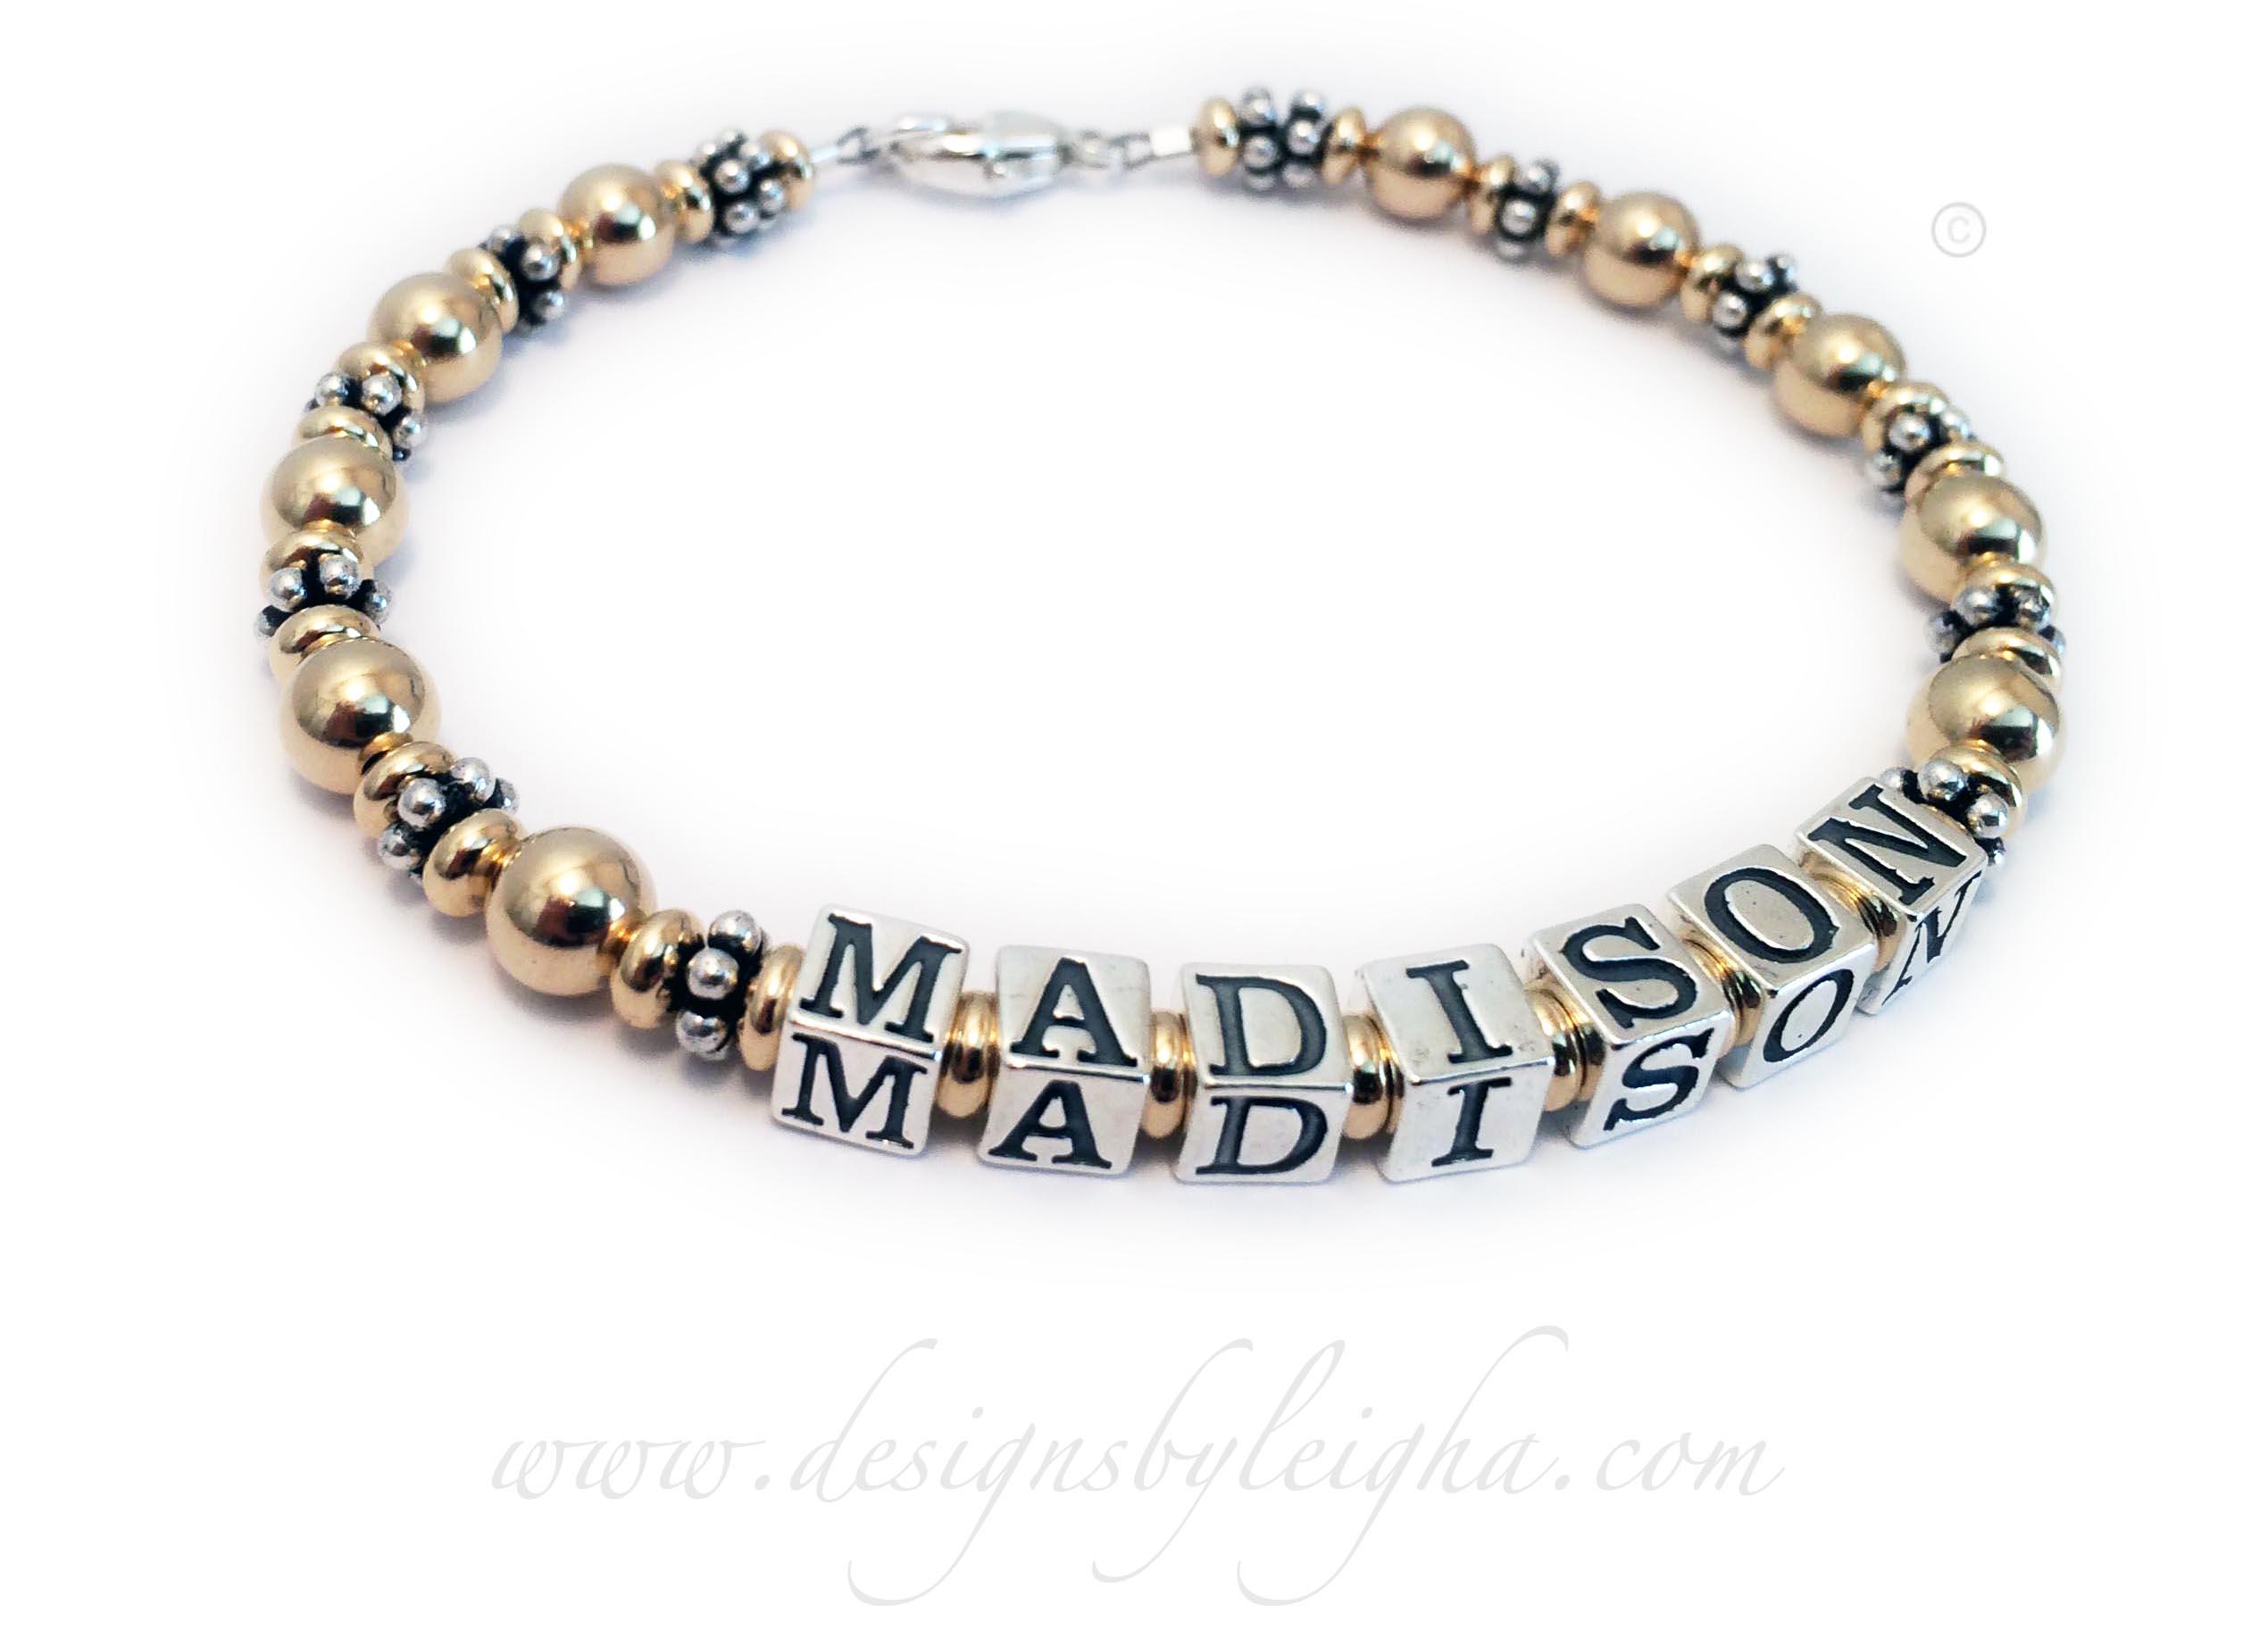 DBL-G5-1string  1 string bracelet with 1 name Gold Bracelet for Mommy Enter: Madison They chose one of my beautiful sterling silver lobster clasps.